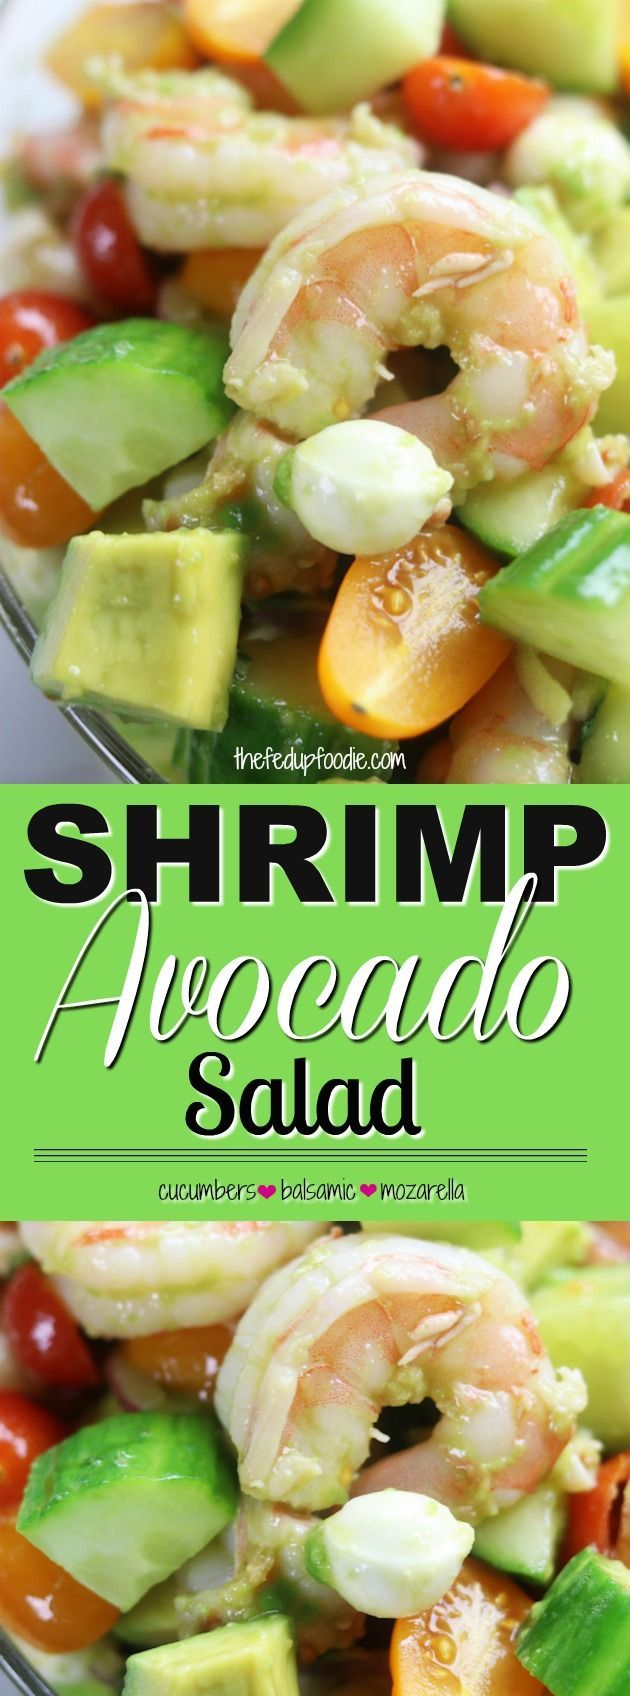 Shrimp Avocado Salad is a tasty and low-carb recipe perfect for a refreshing meal on a hot summer day. A balsamic, olive oil and garlic dressing surrounds chilled shrimp, avocado, mozzarella and tomatoes. This 15 minute meal is my favorite as a packed worked lunch. #shrimprecipeshealthy #seafoodsalad #shrimpavocadosalad #shrimpsaladhealthy https://www.thefedupfoodie.com